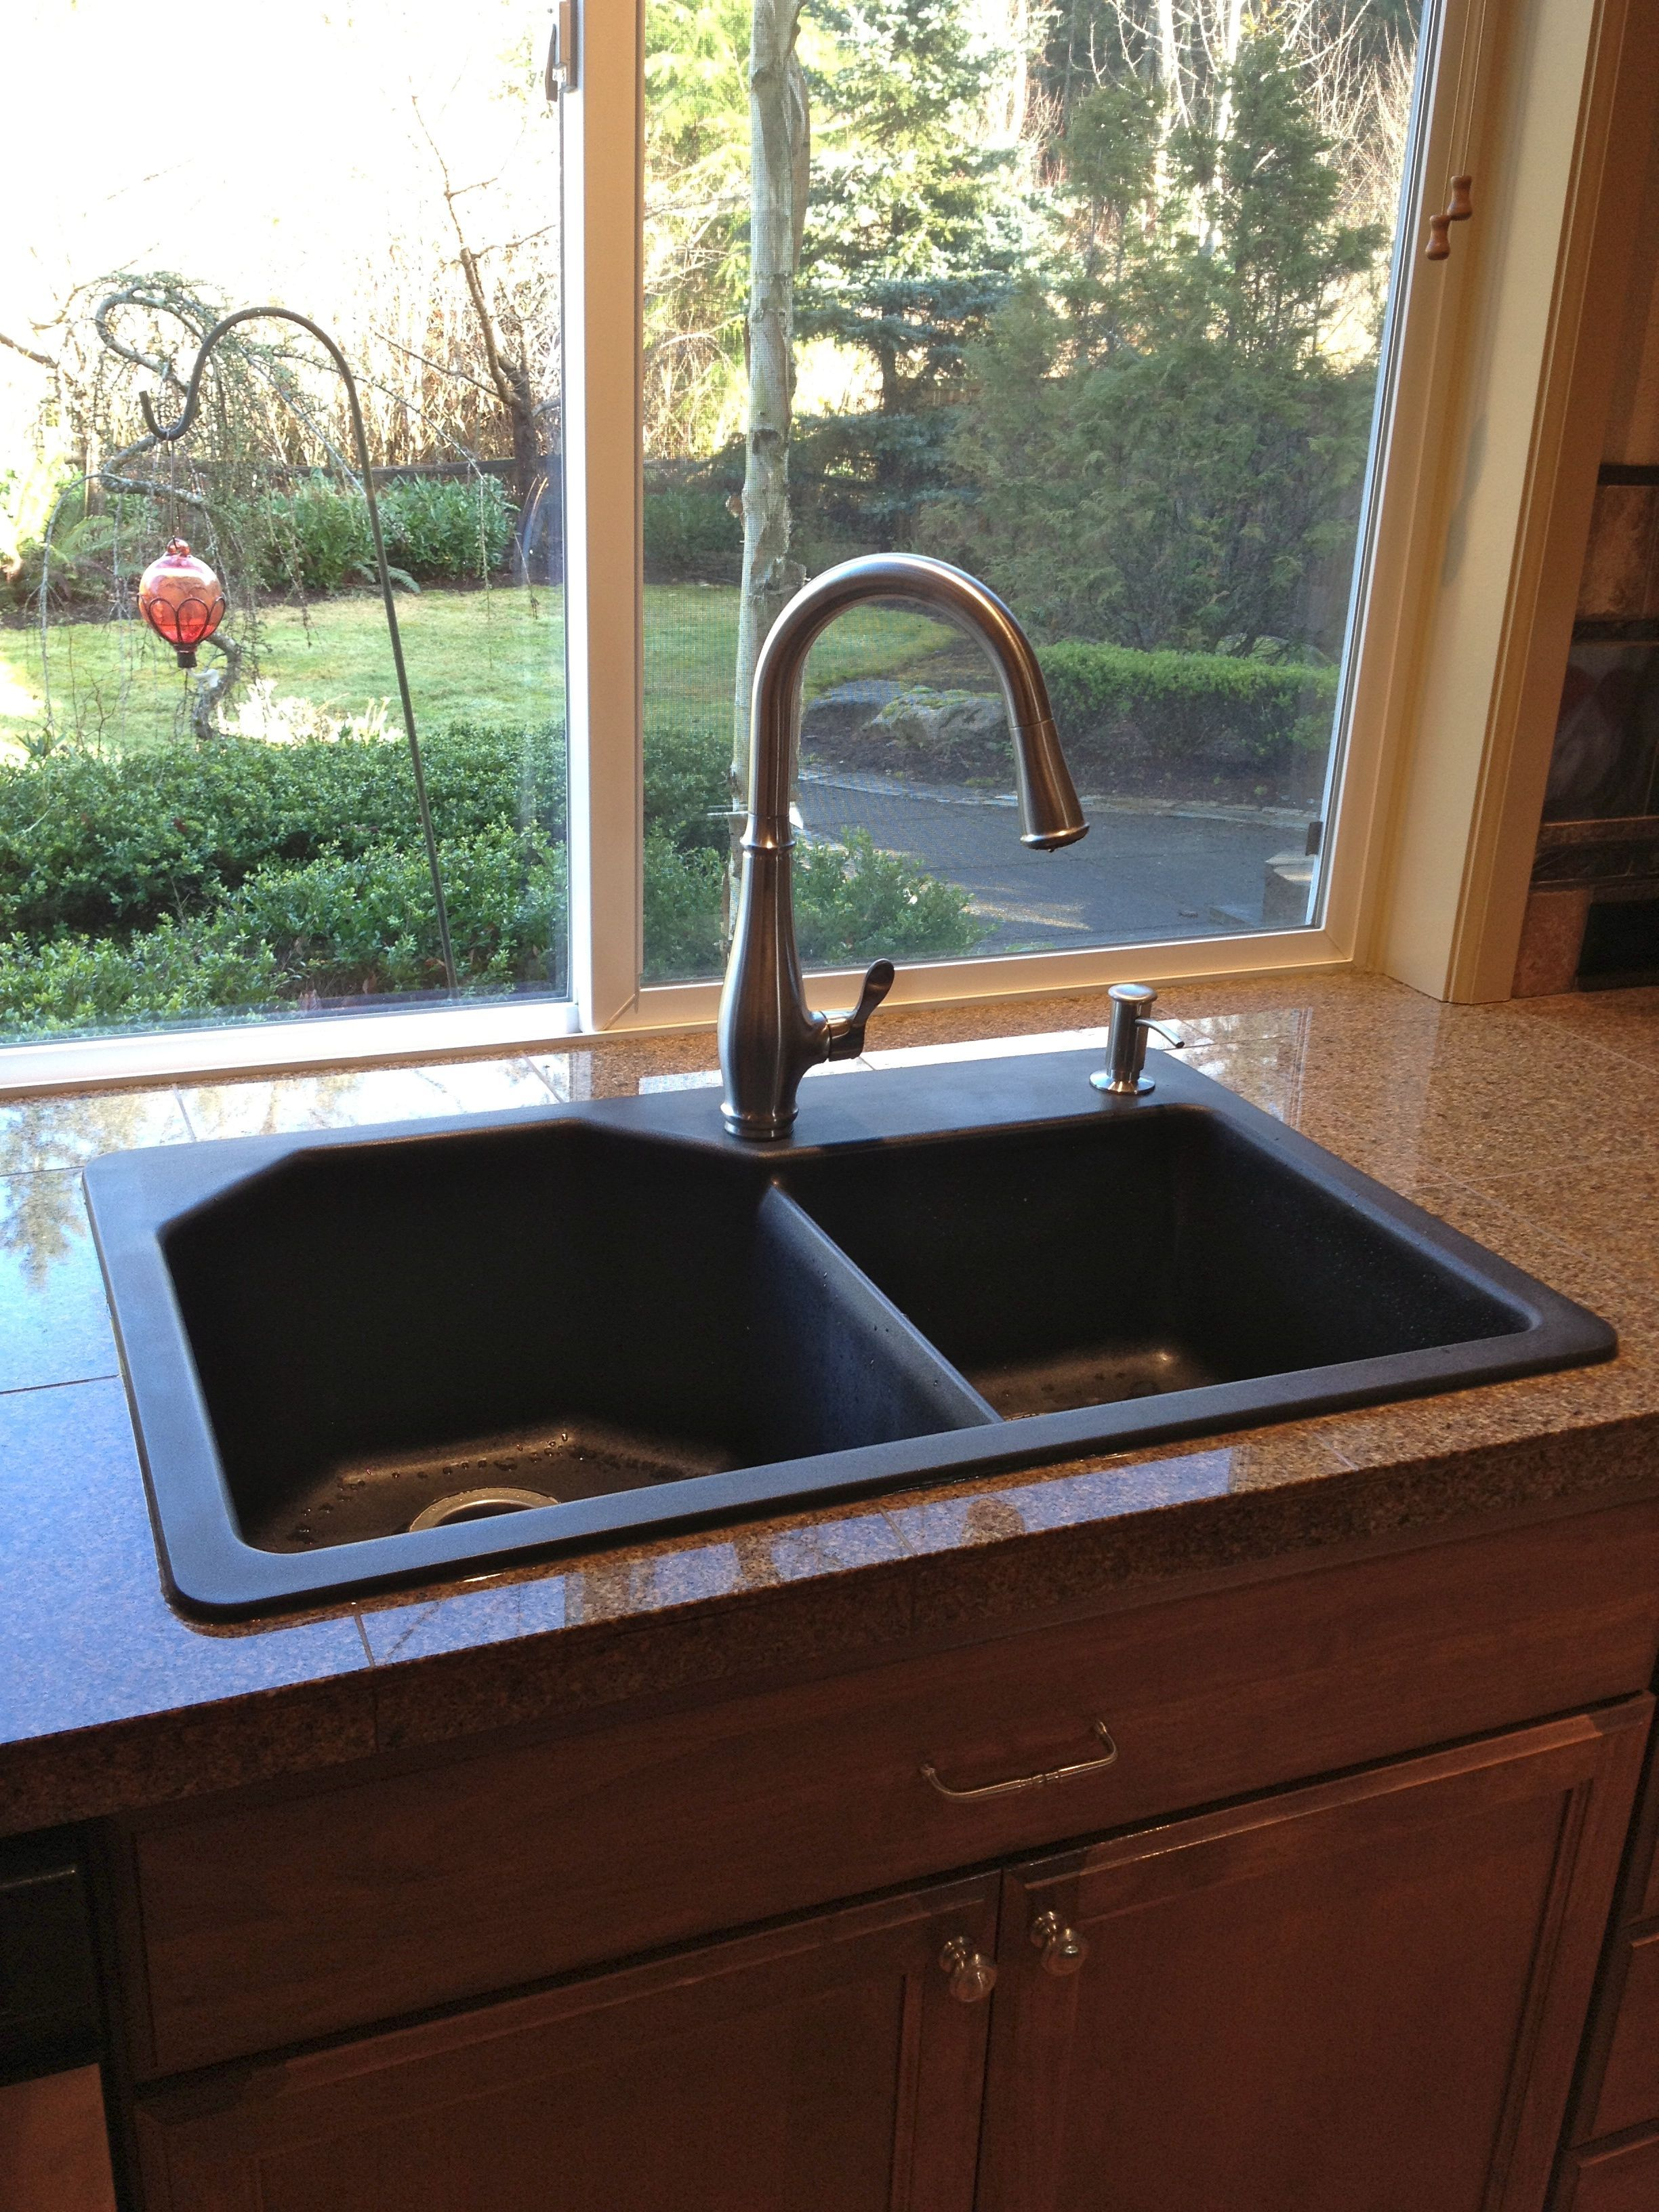 Granite composite sink. Home of cookiescakespiesohmy.com | New house ...